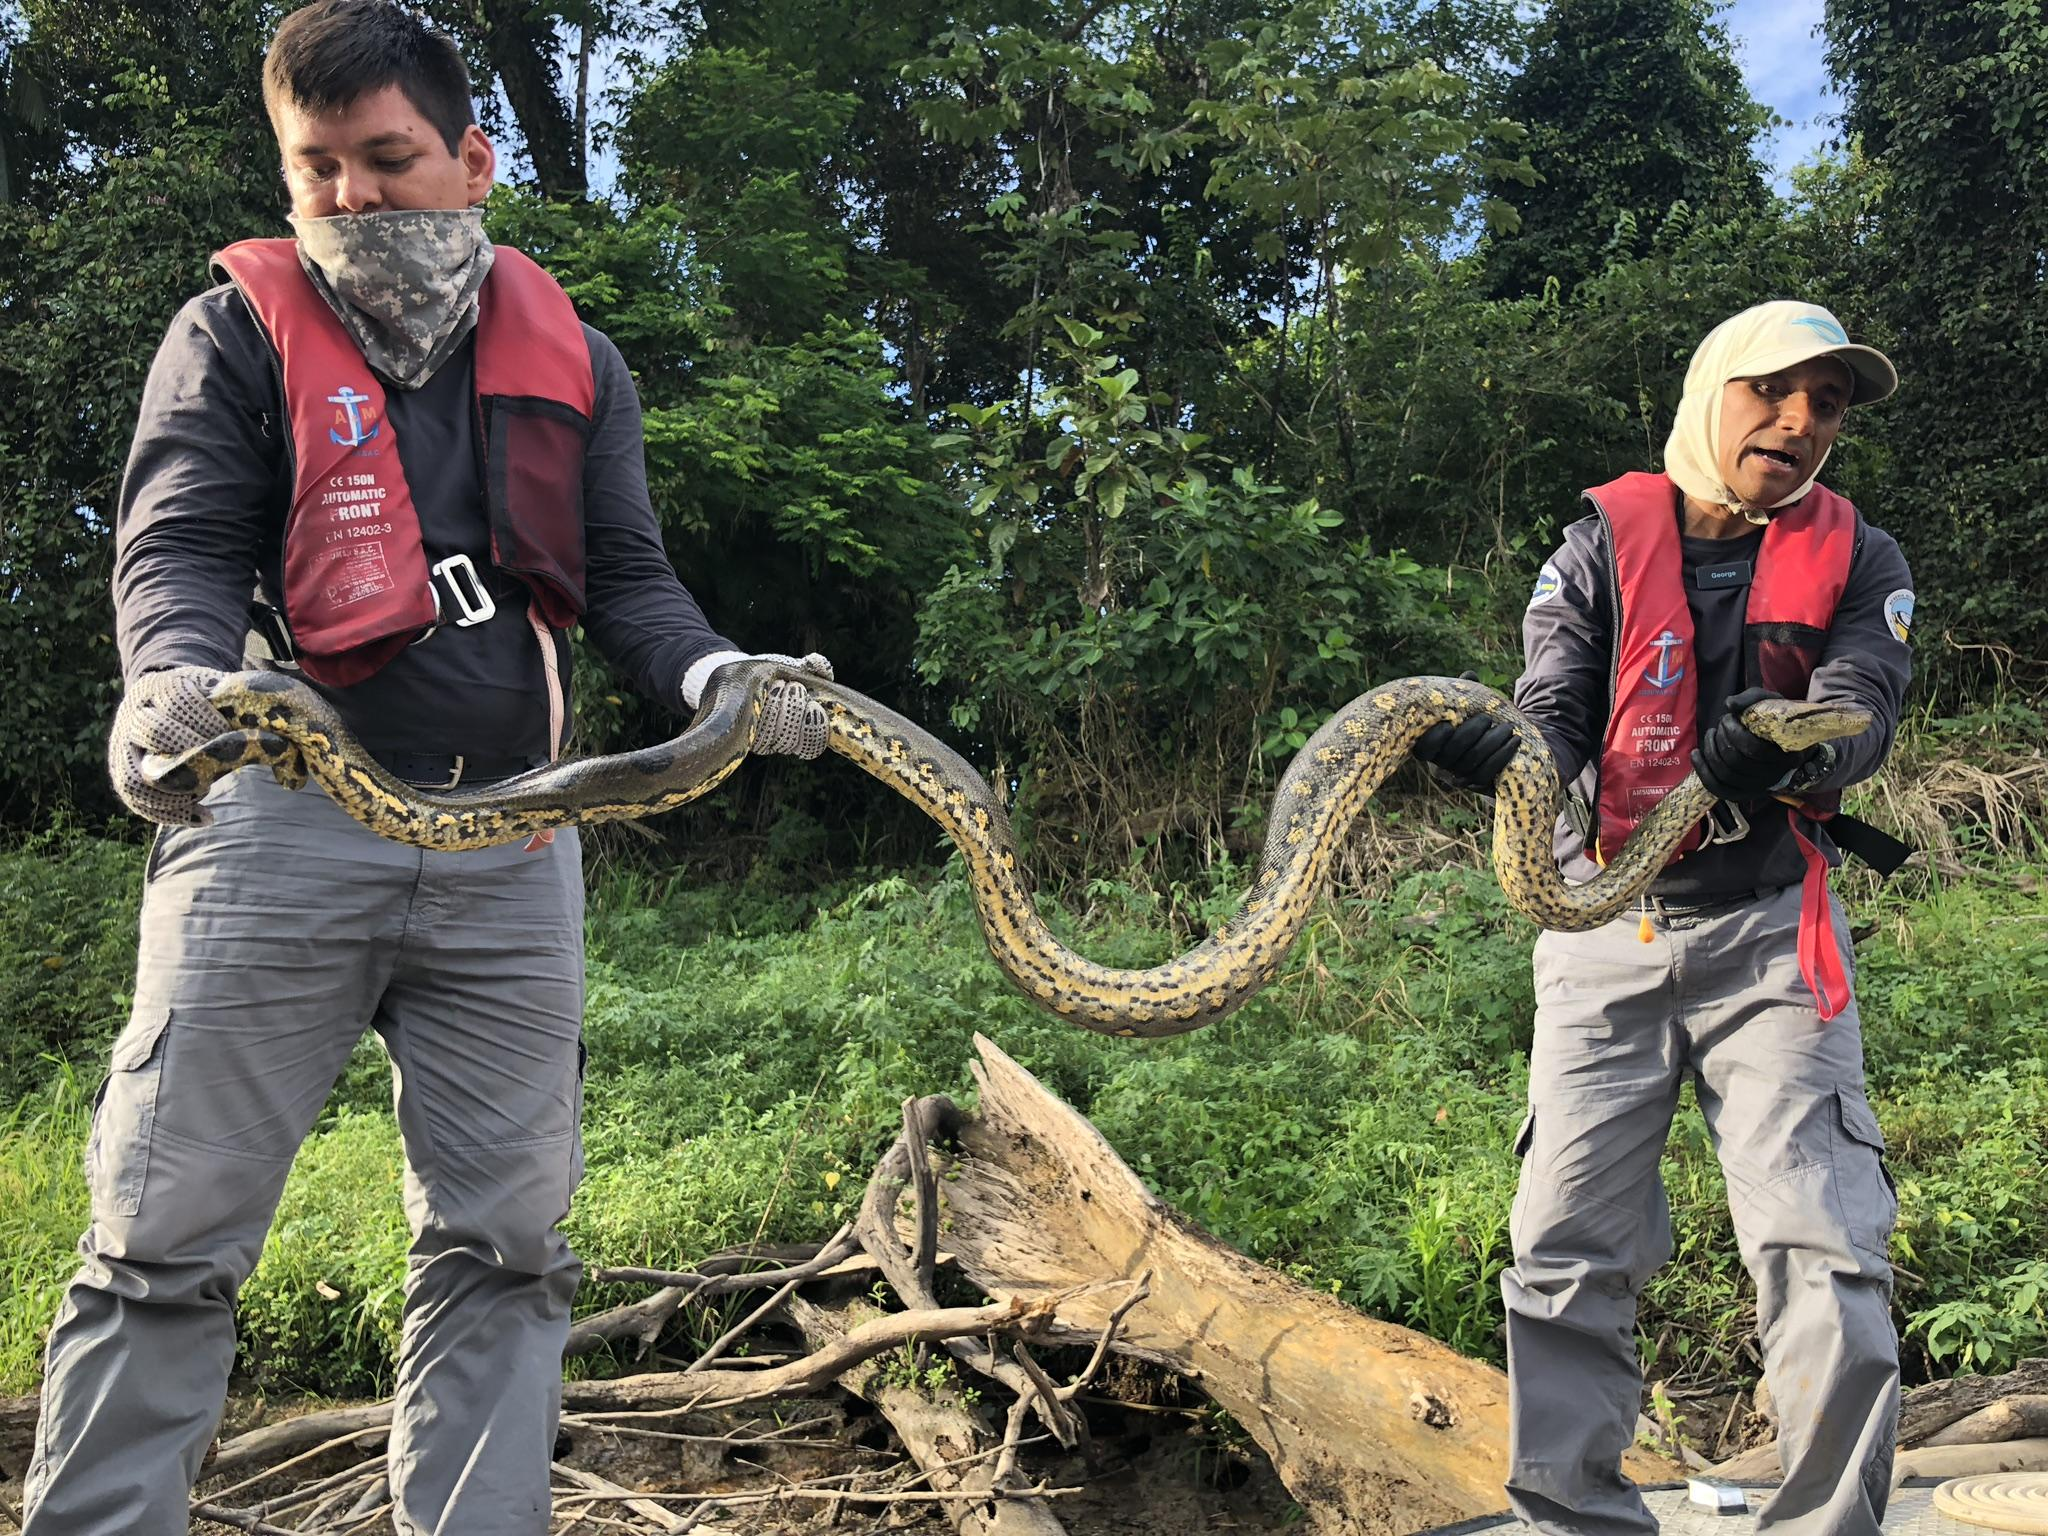 Show and tell 2 with a 16 foot anaconda